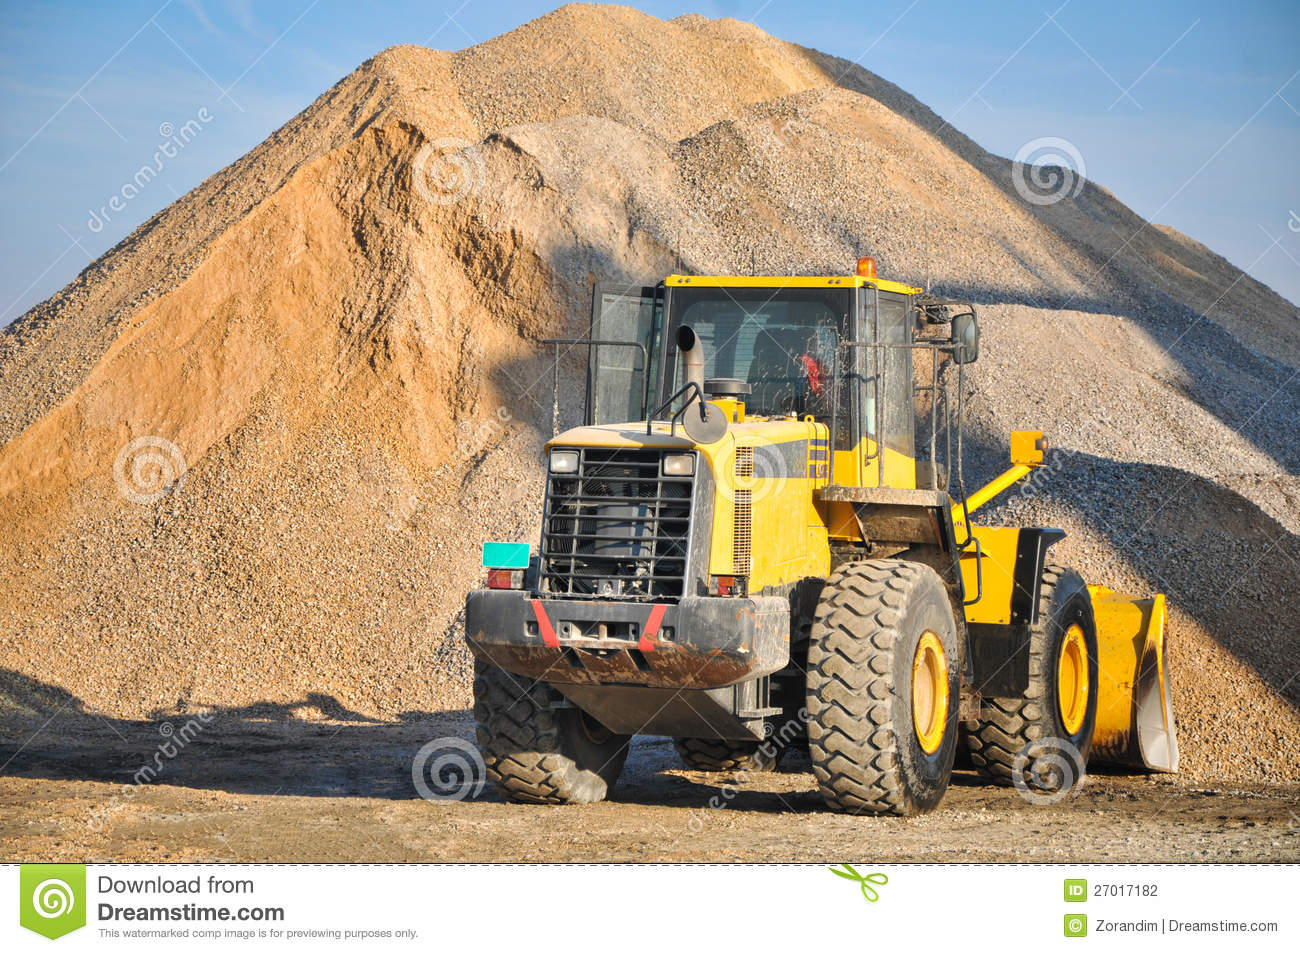 Stock photography loader excavator construction machinery equipment